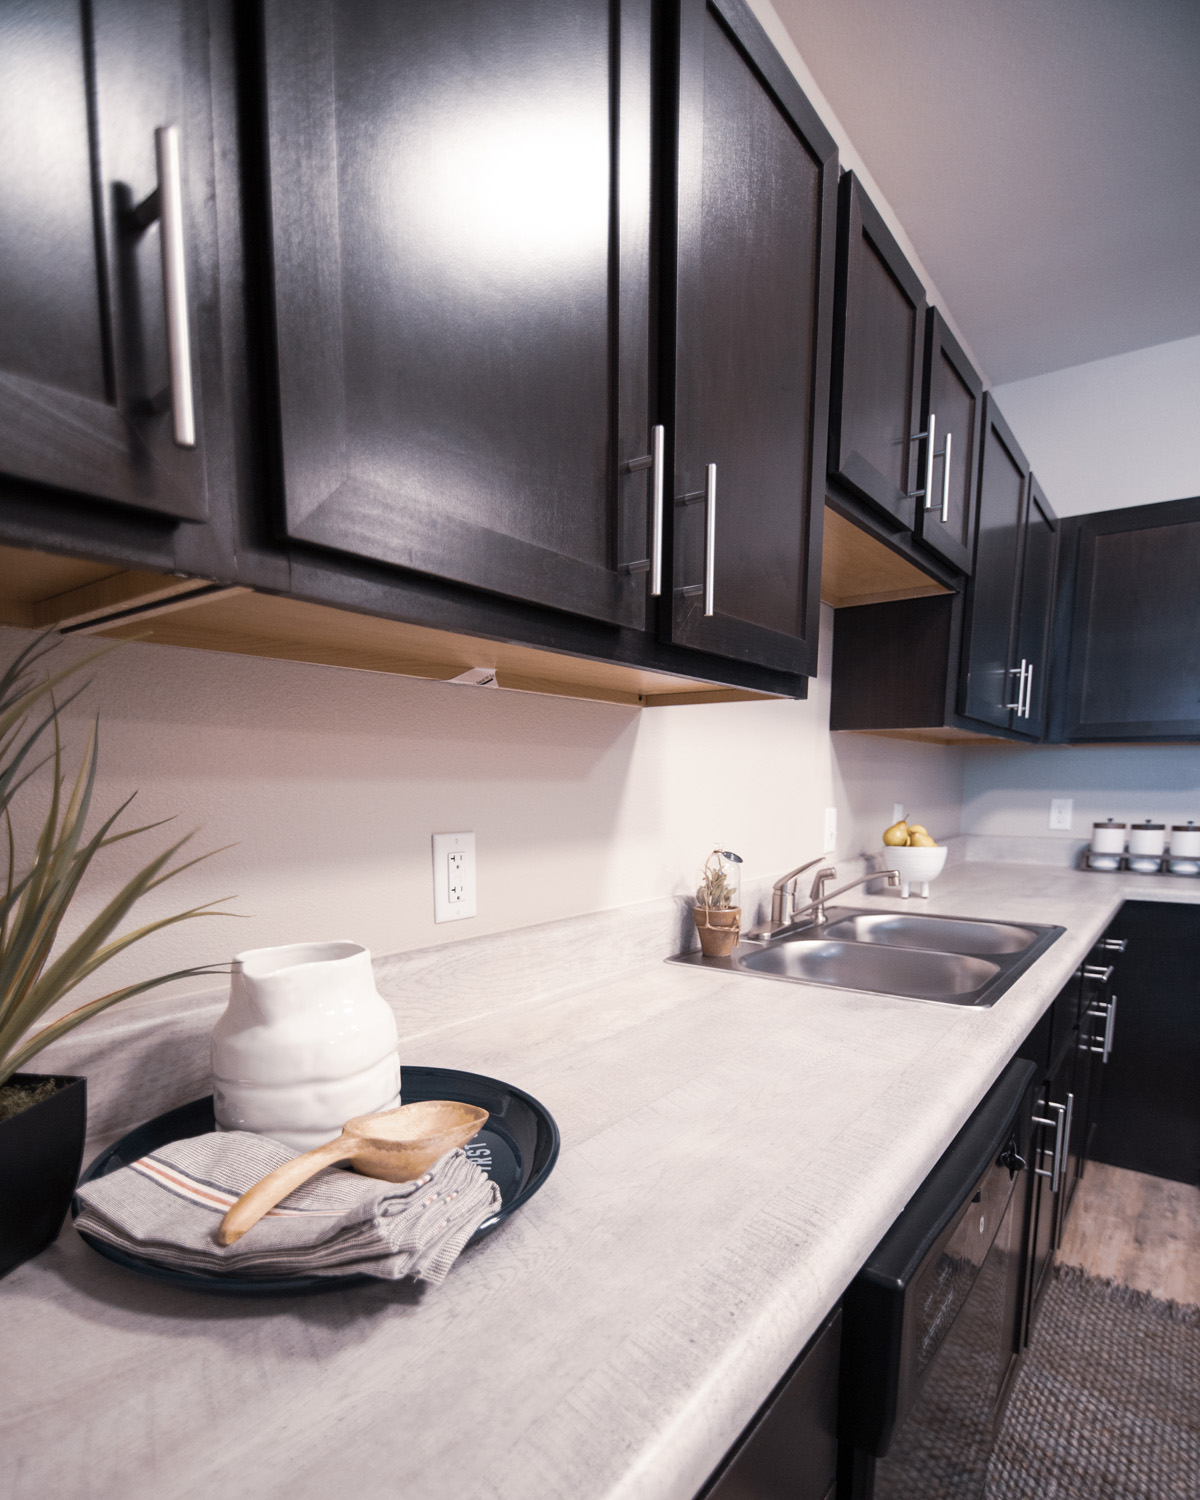 Kitchen area at Goodnight Commons with dark brown cabinets, hard-surface countertops, and a dual sided sink.